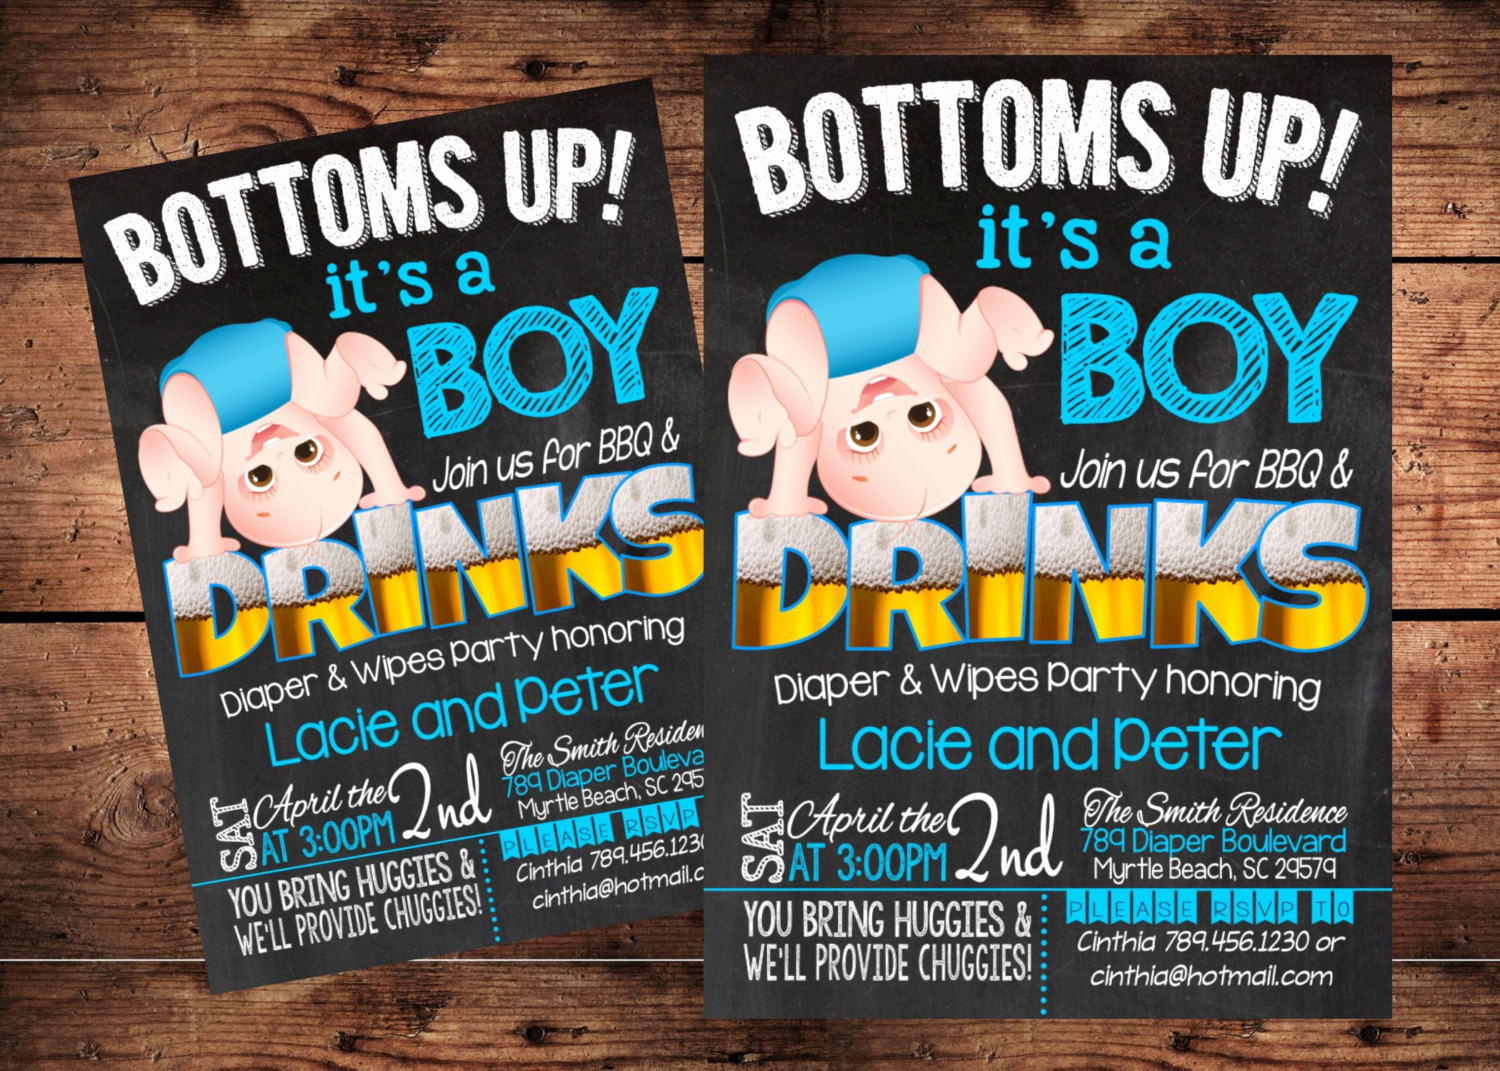 Diaper Party Invitation Wording Unique Bottoms Up Baby Shower Invitation Funny Diaper Shower